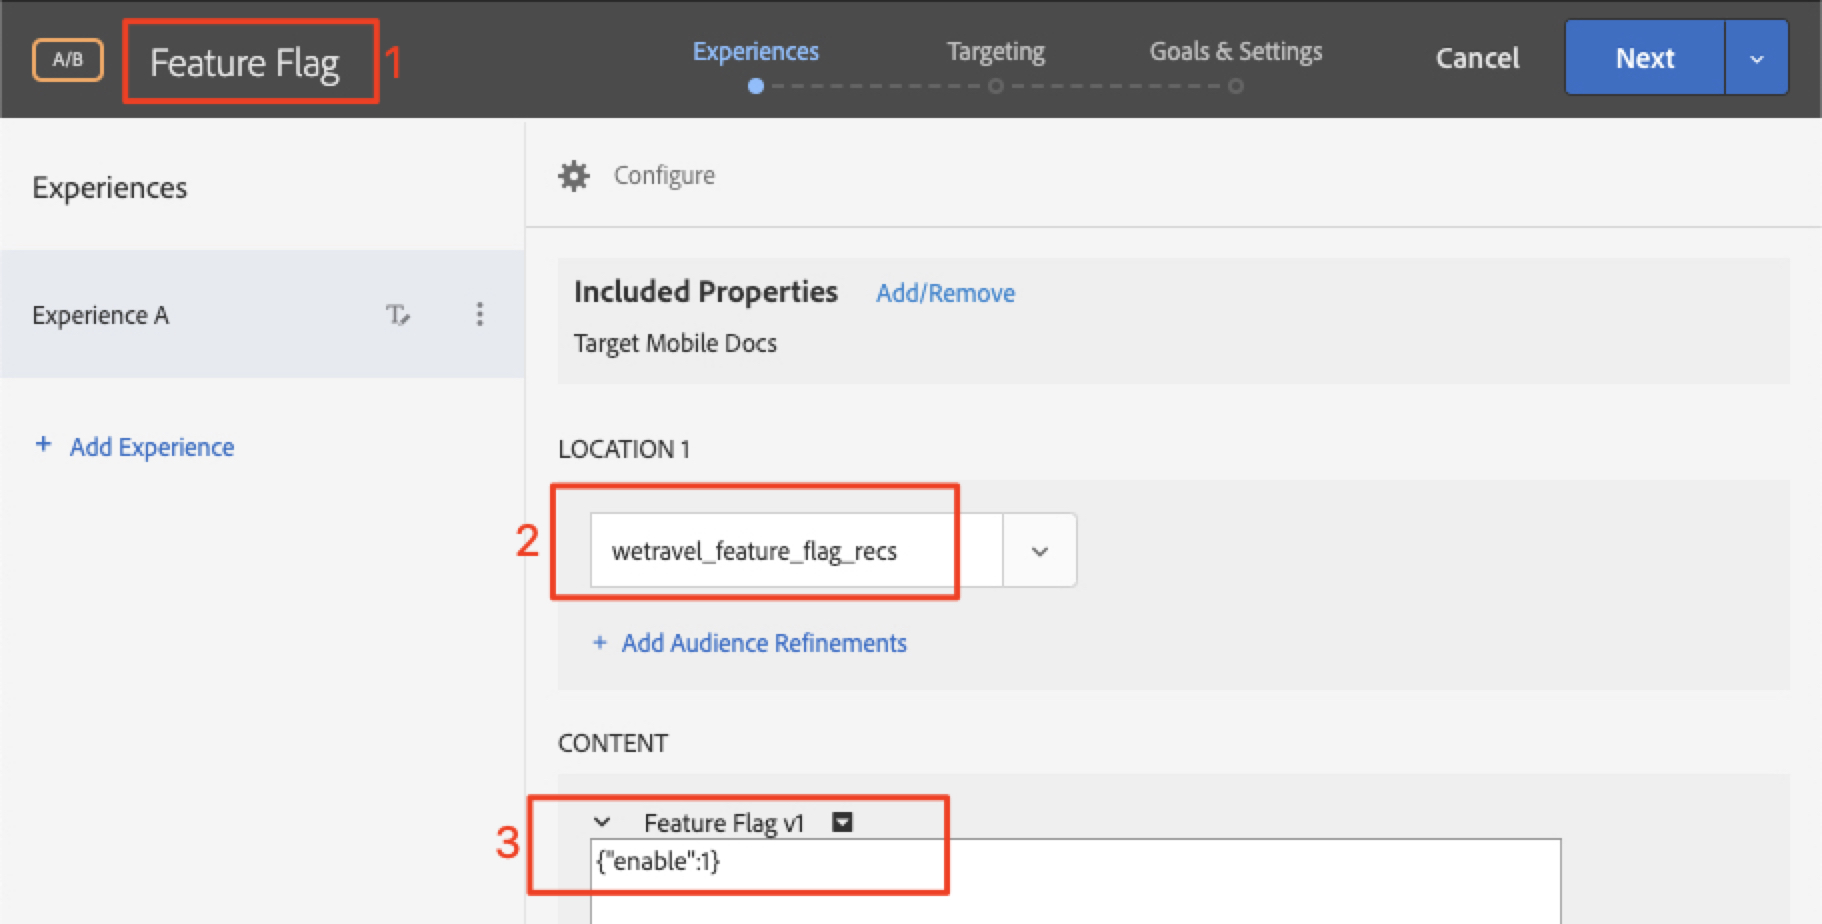 Feature Flag Activity Config